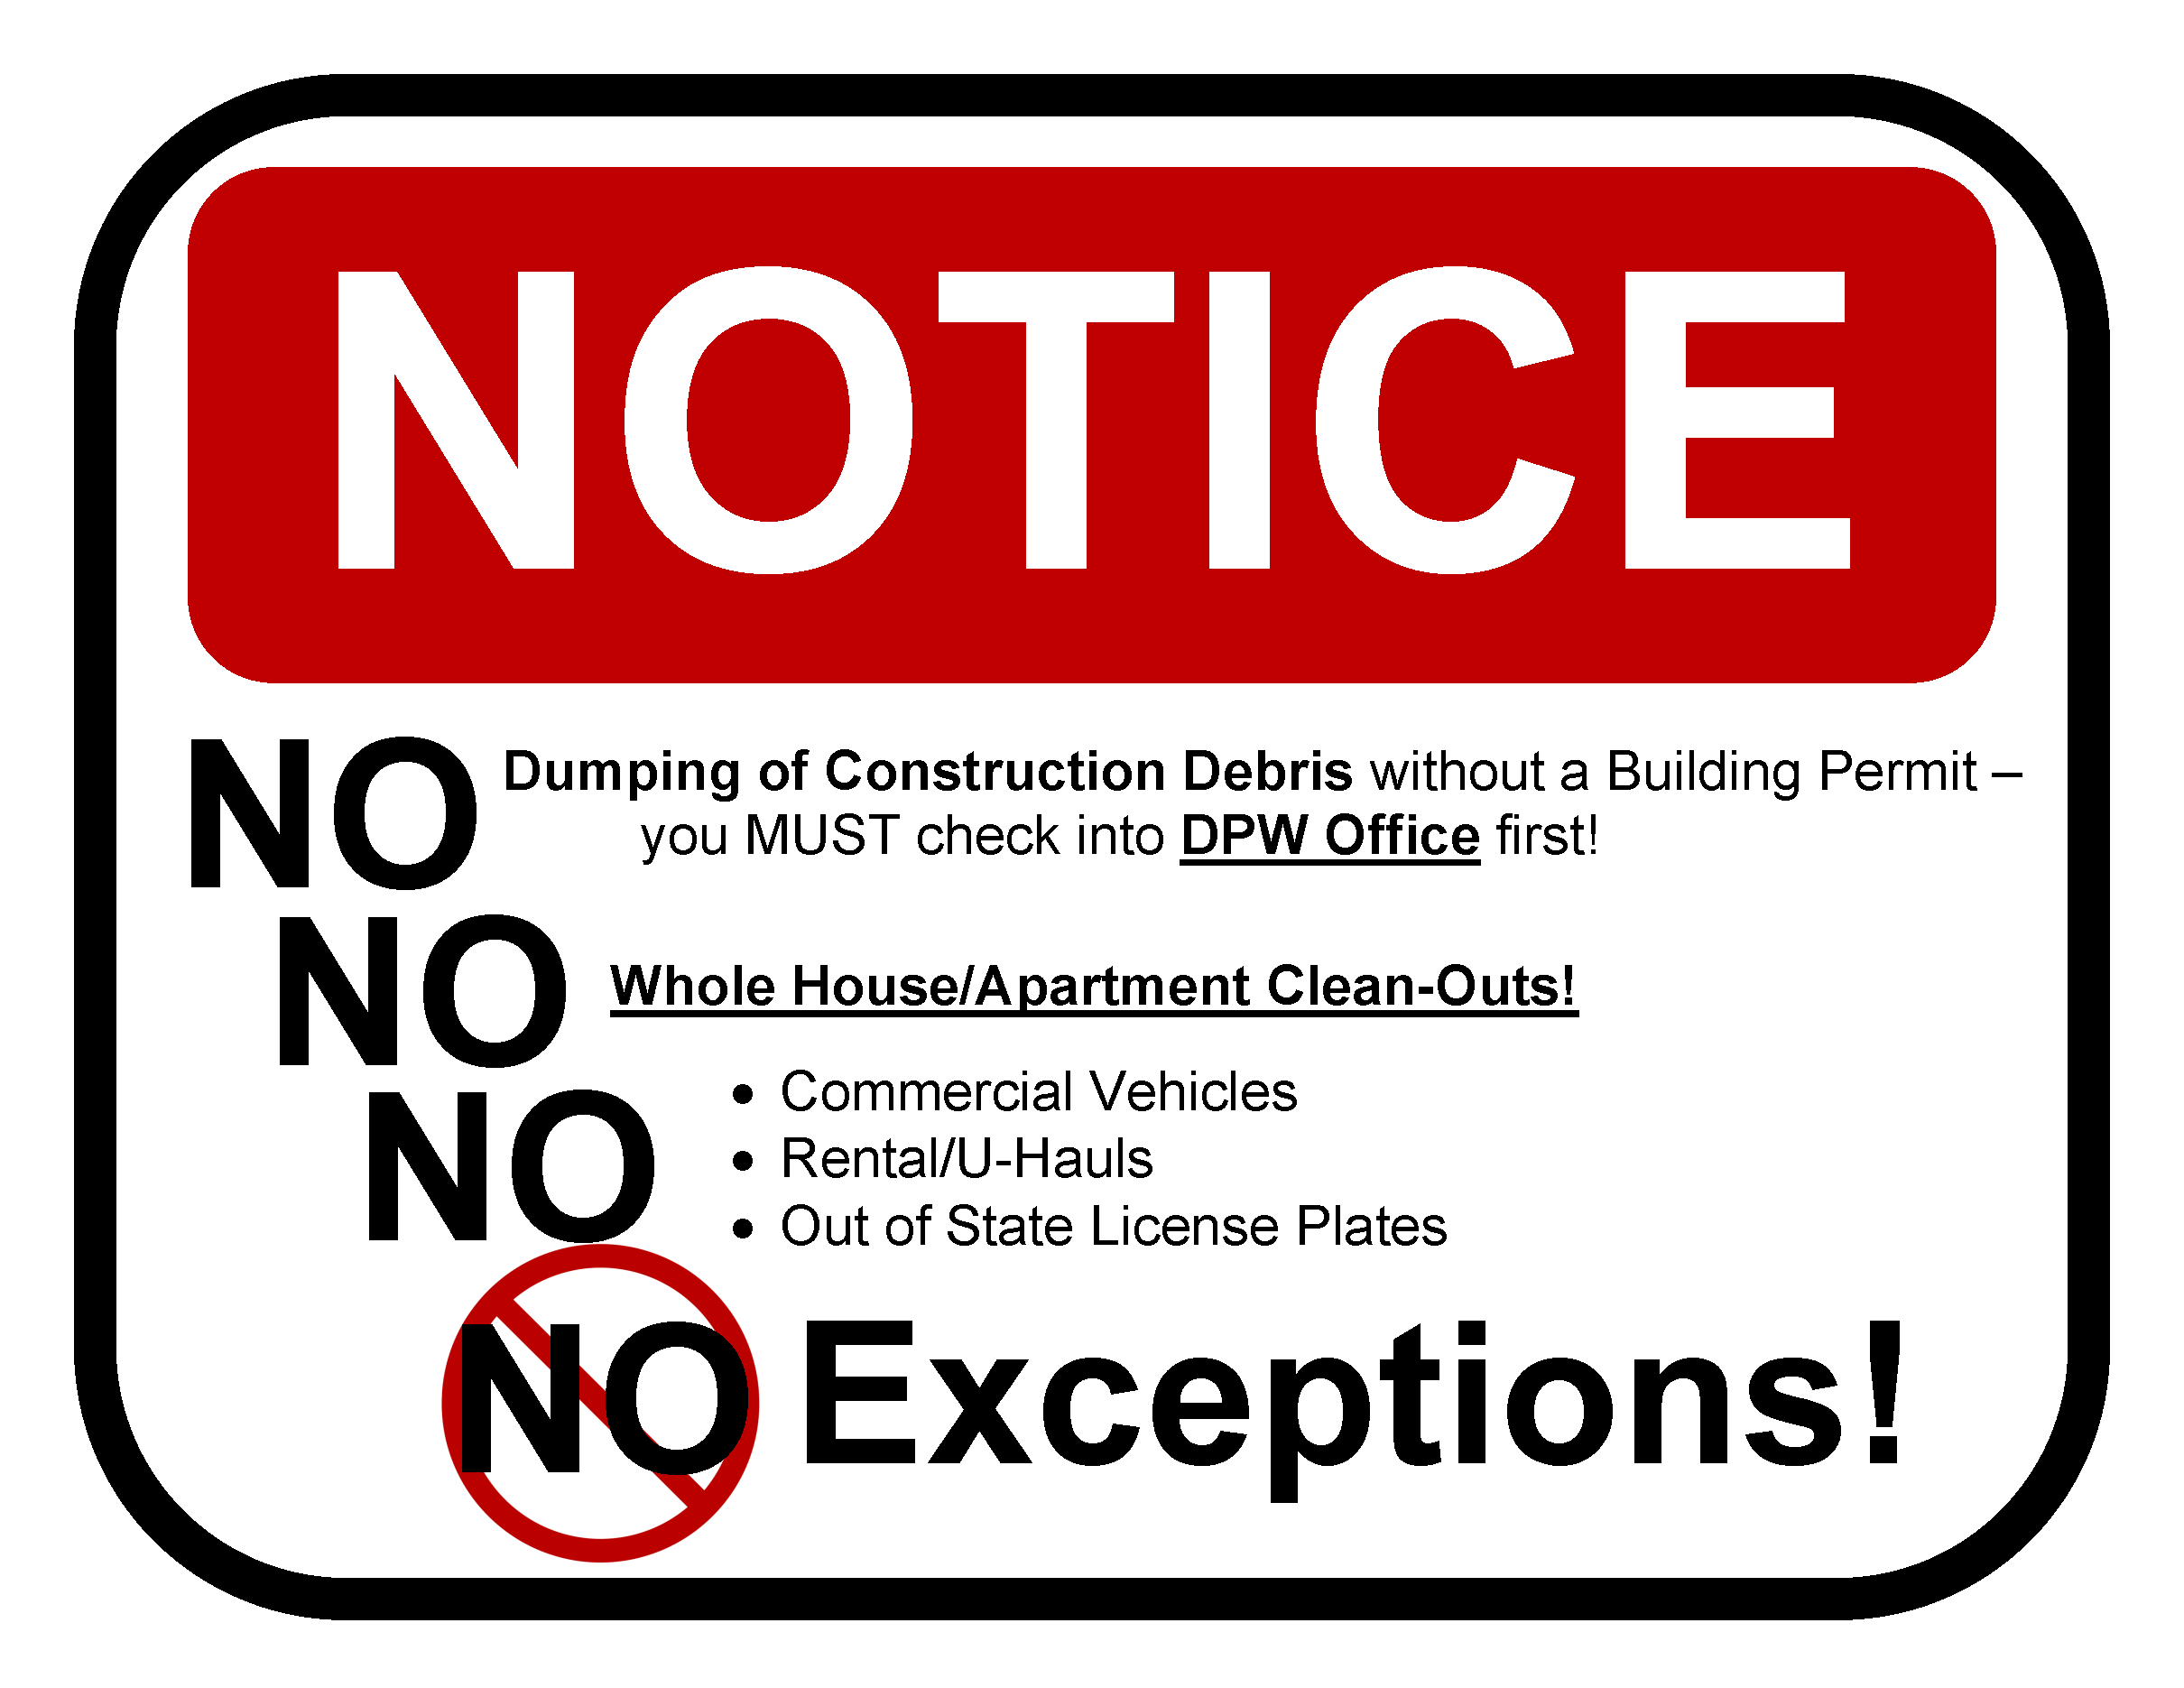 No dumping of construction debris without a Building Permit.  You must check into DPW office first.  No whole house/apartment clean-outs.  No commercial vehicles.  No rentals / U-hauls.  No out of state license plates.  No exceptions.